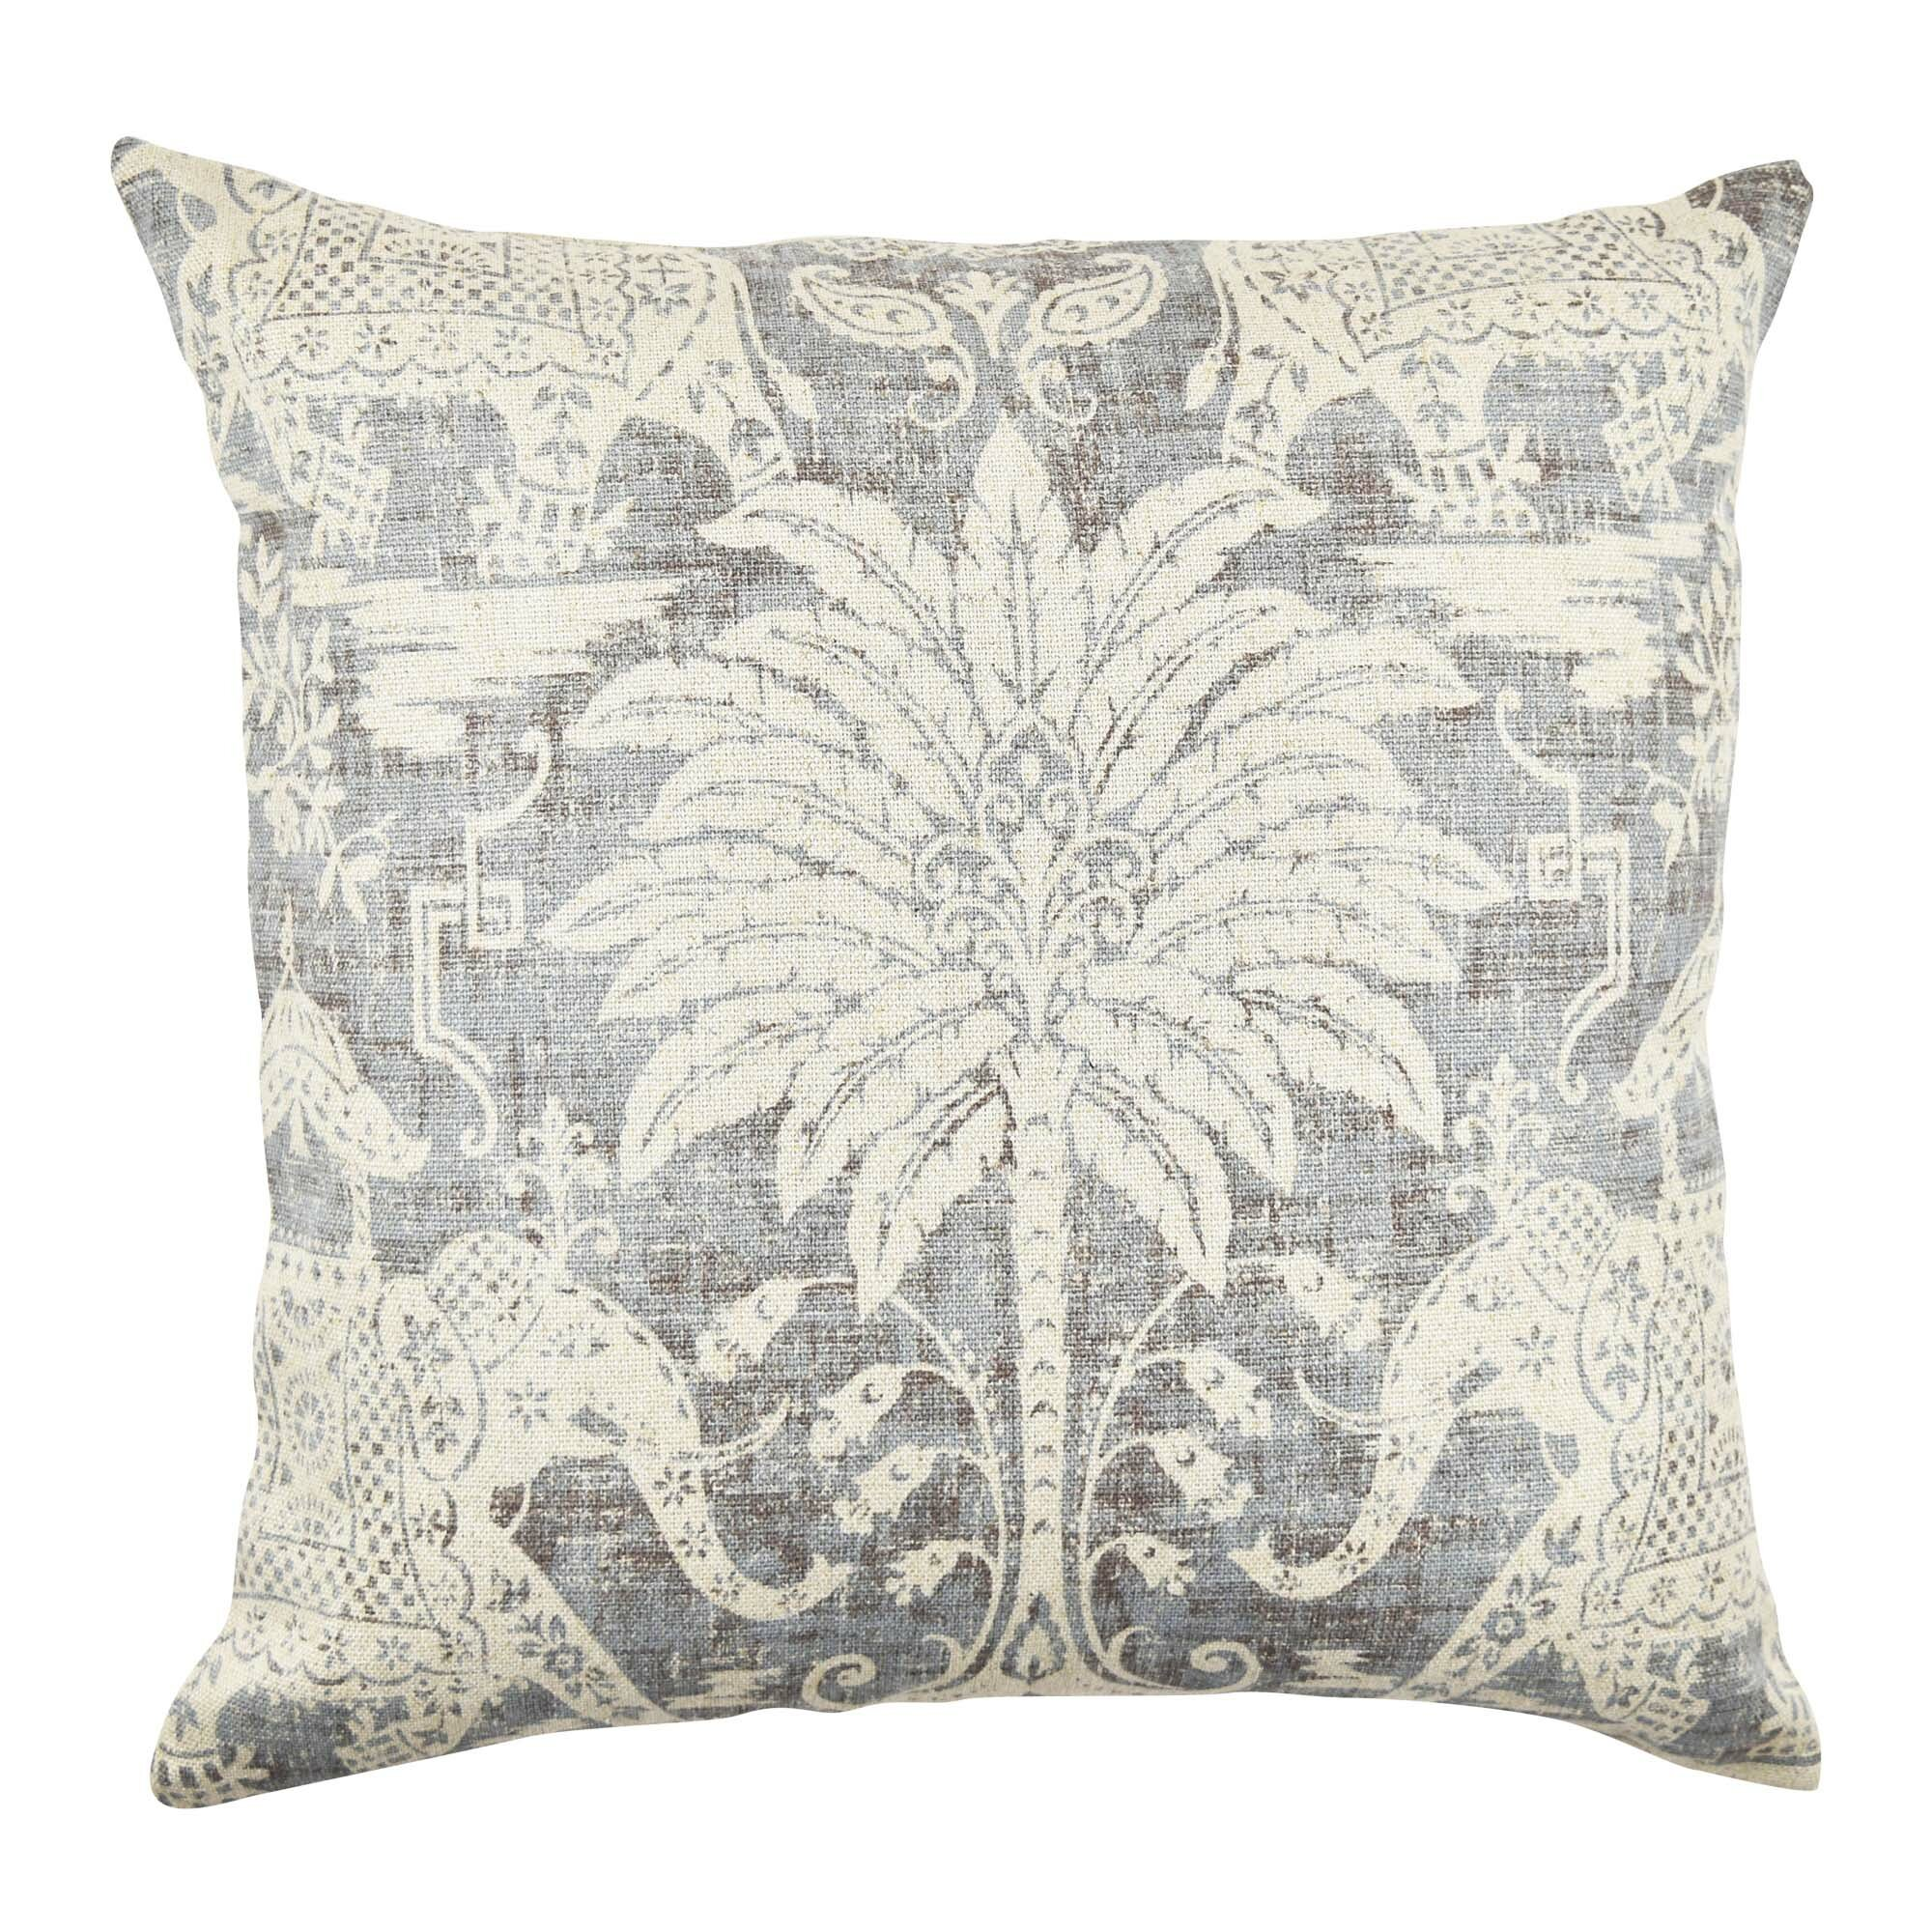 Elephant Throw Pillow & Reviews Joss & Main